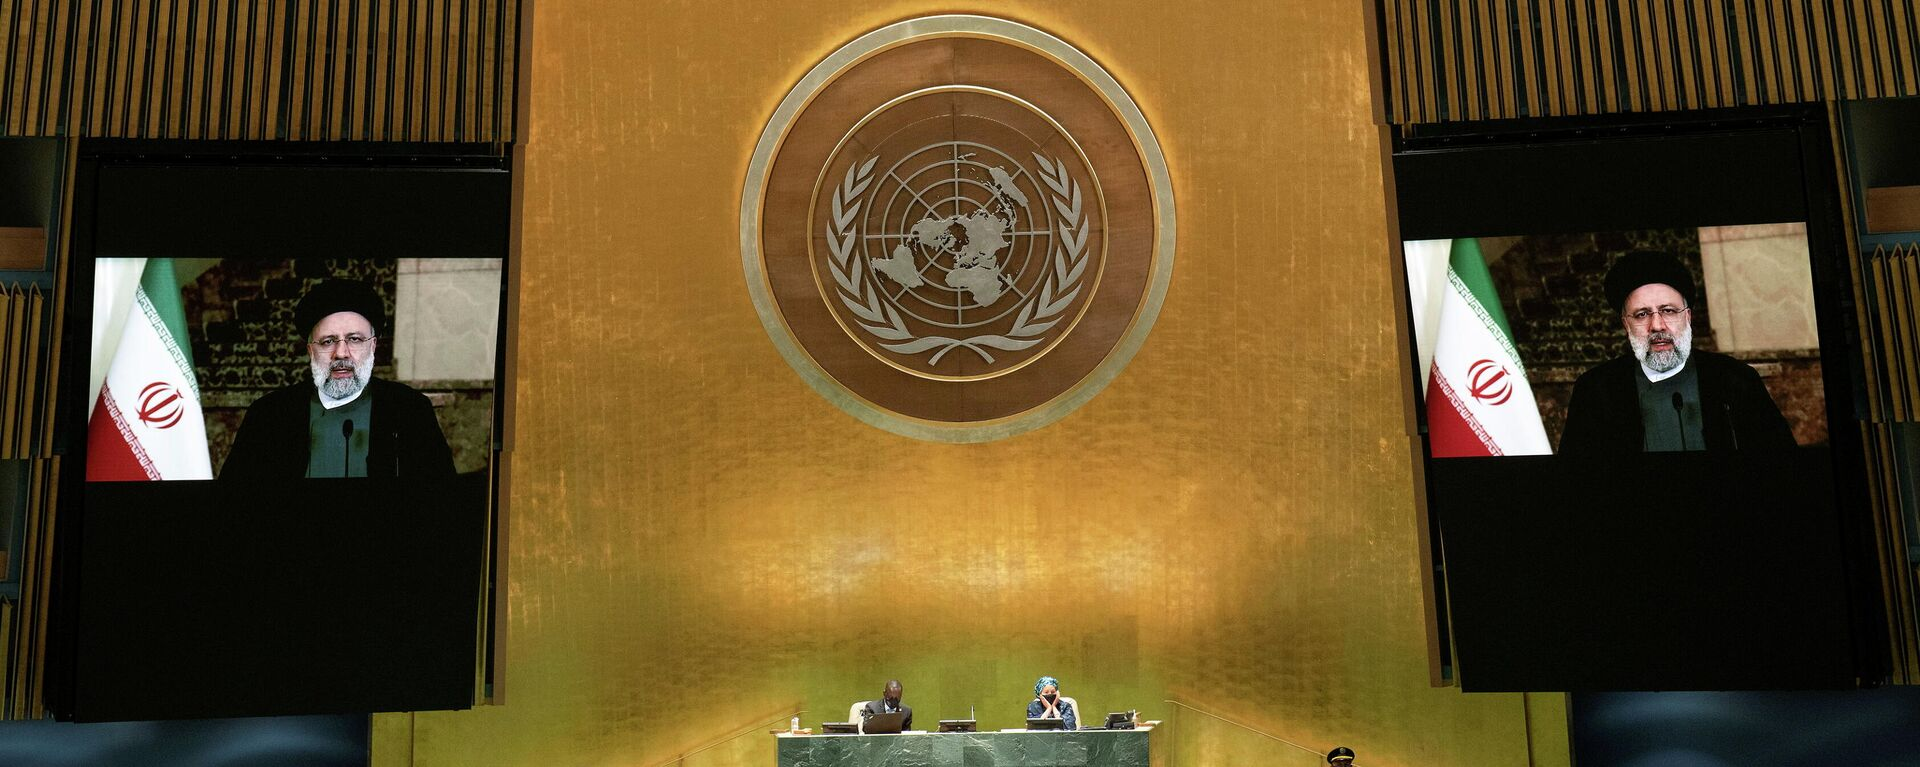 Iran's President's Ebrahim Raisi remotely addresses the 76th Session of the U.N. General Assembly by pre-recorded video in New York City, U.S., September 21, 2021 - Sputnik International, 1920, 21.09.2021